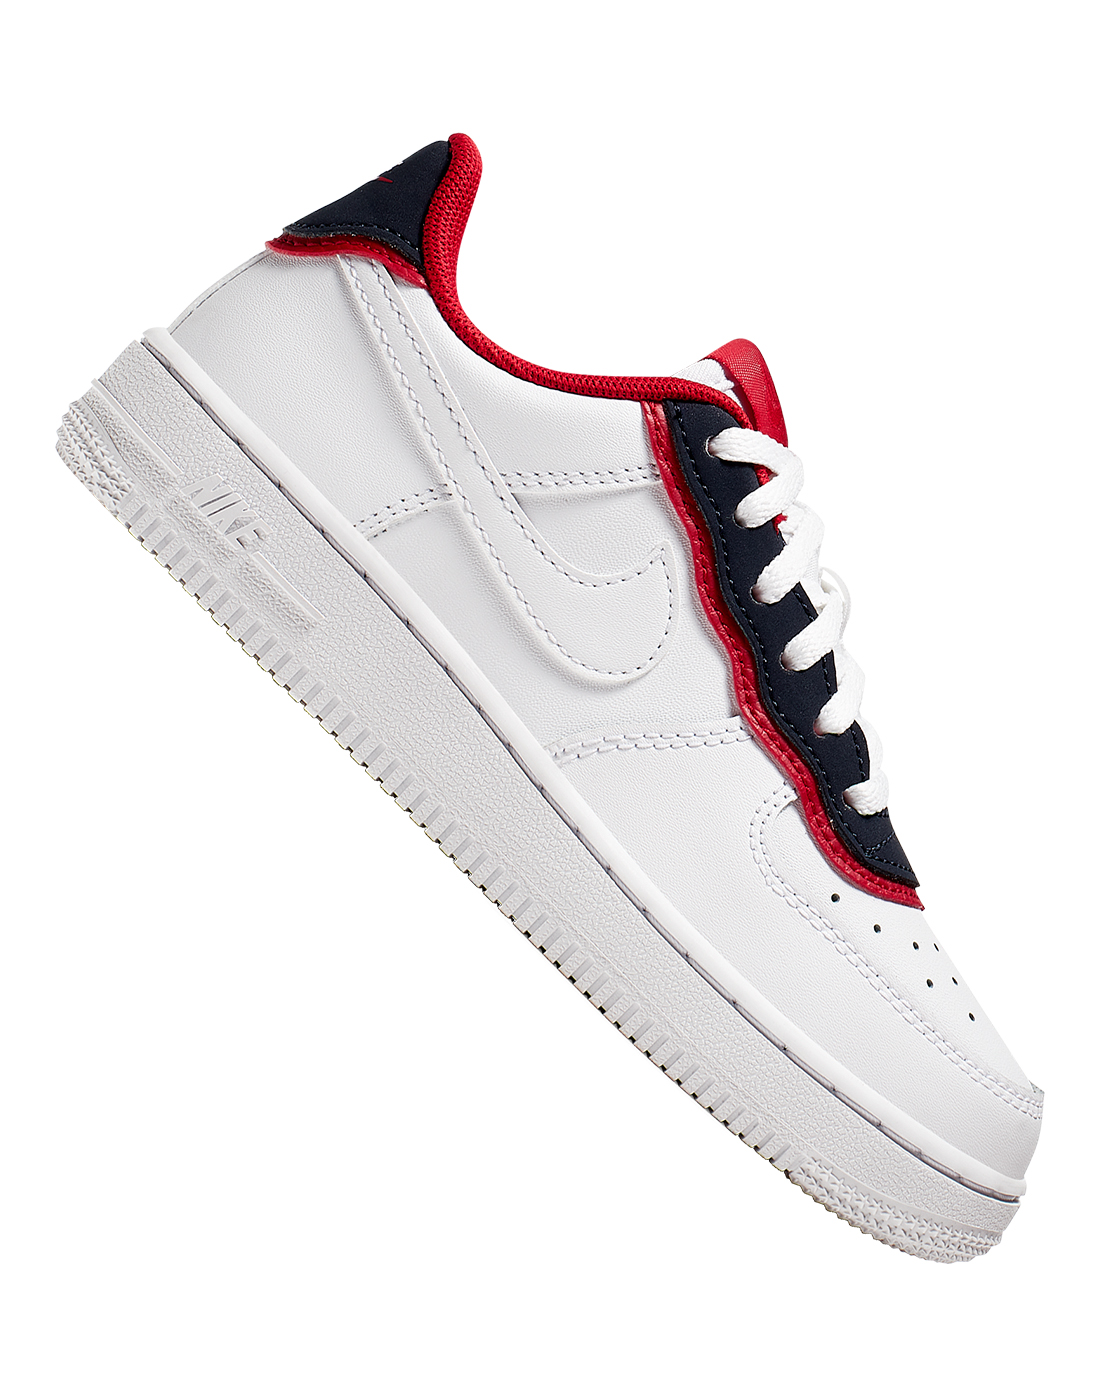 brand new 5f51f f500d Young Kid's White, Black & Red Nike Air Force 1 | Life Style Sports